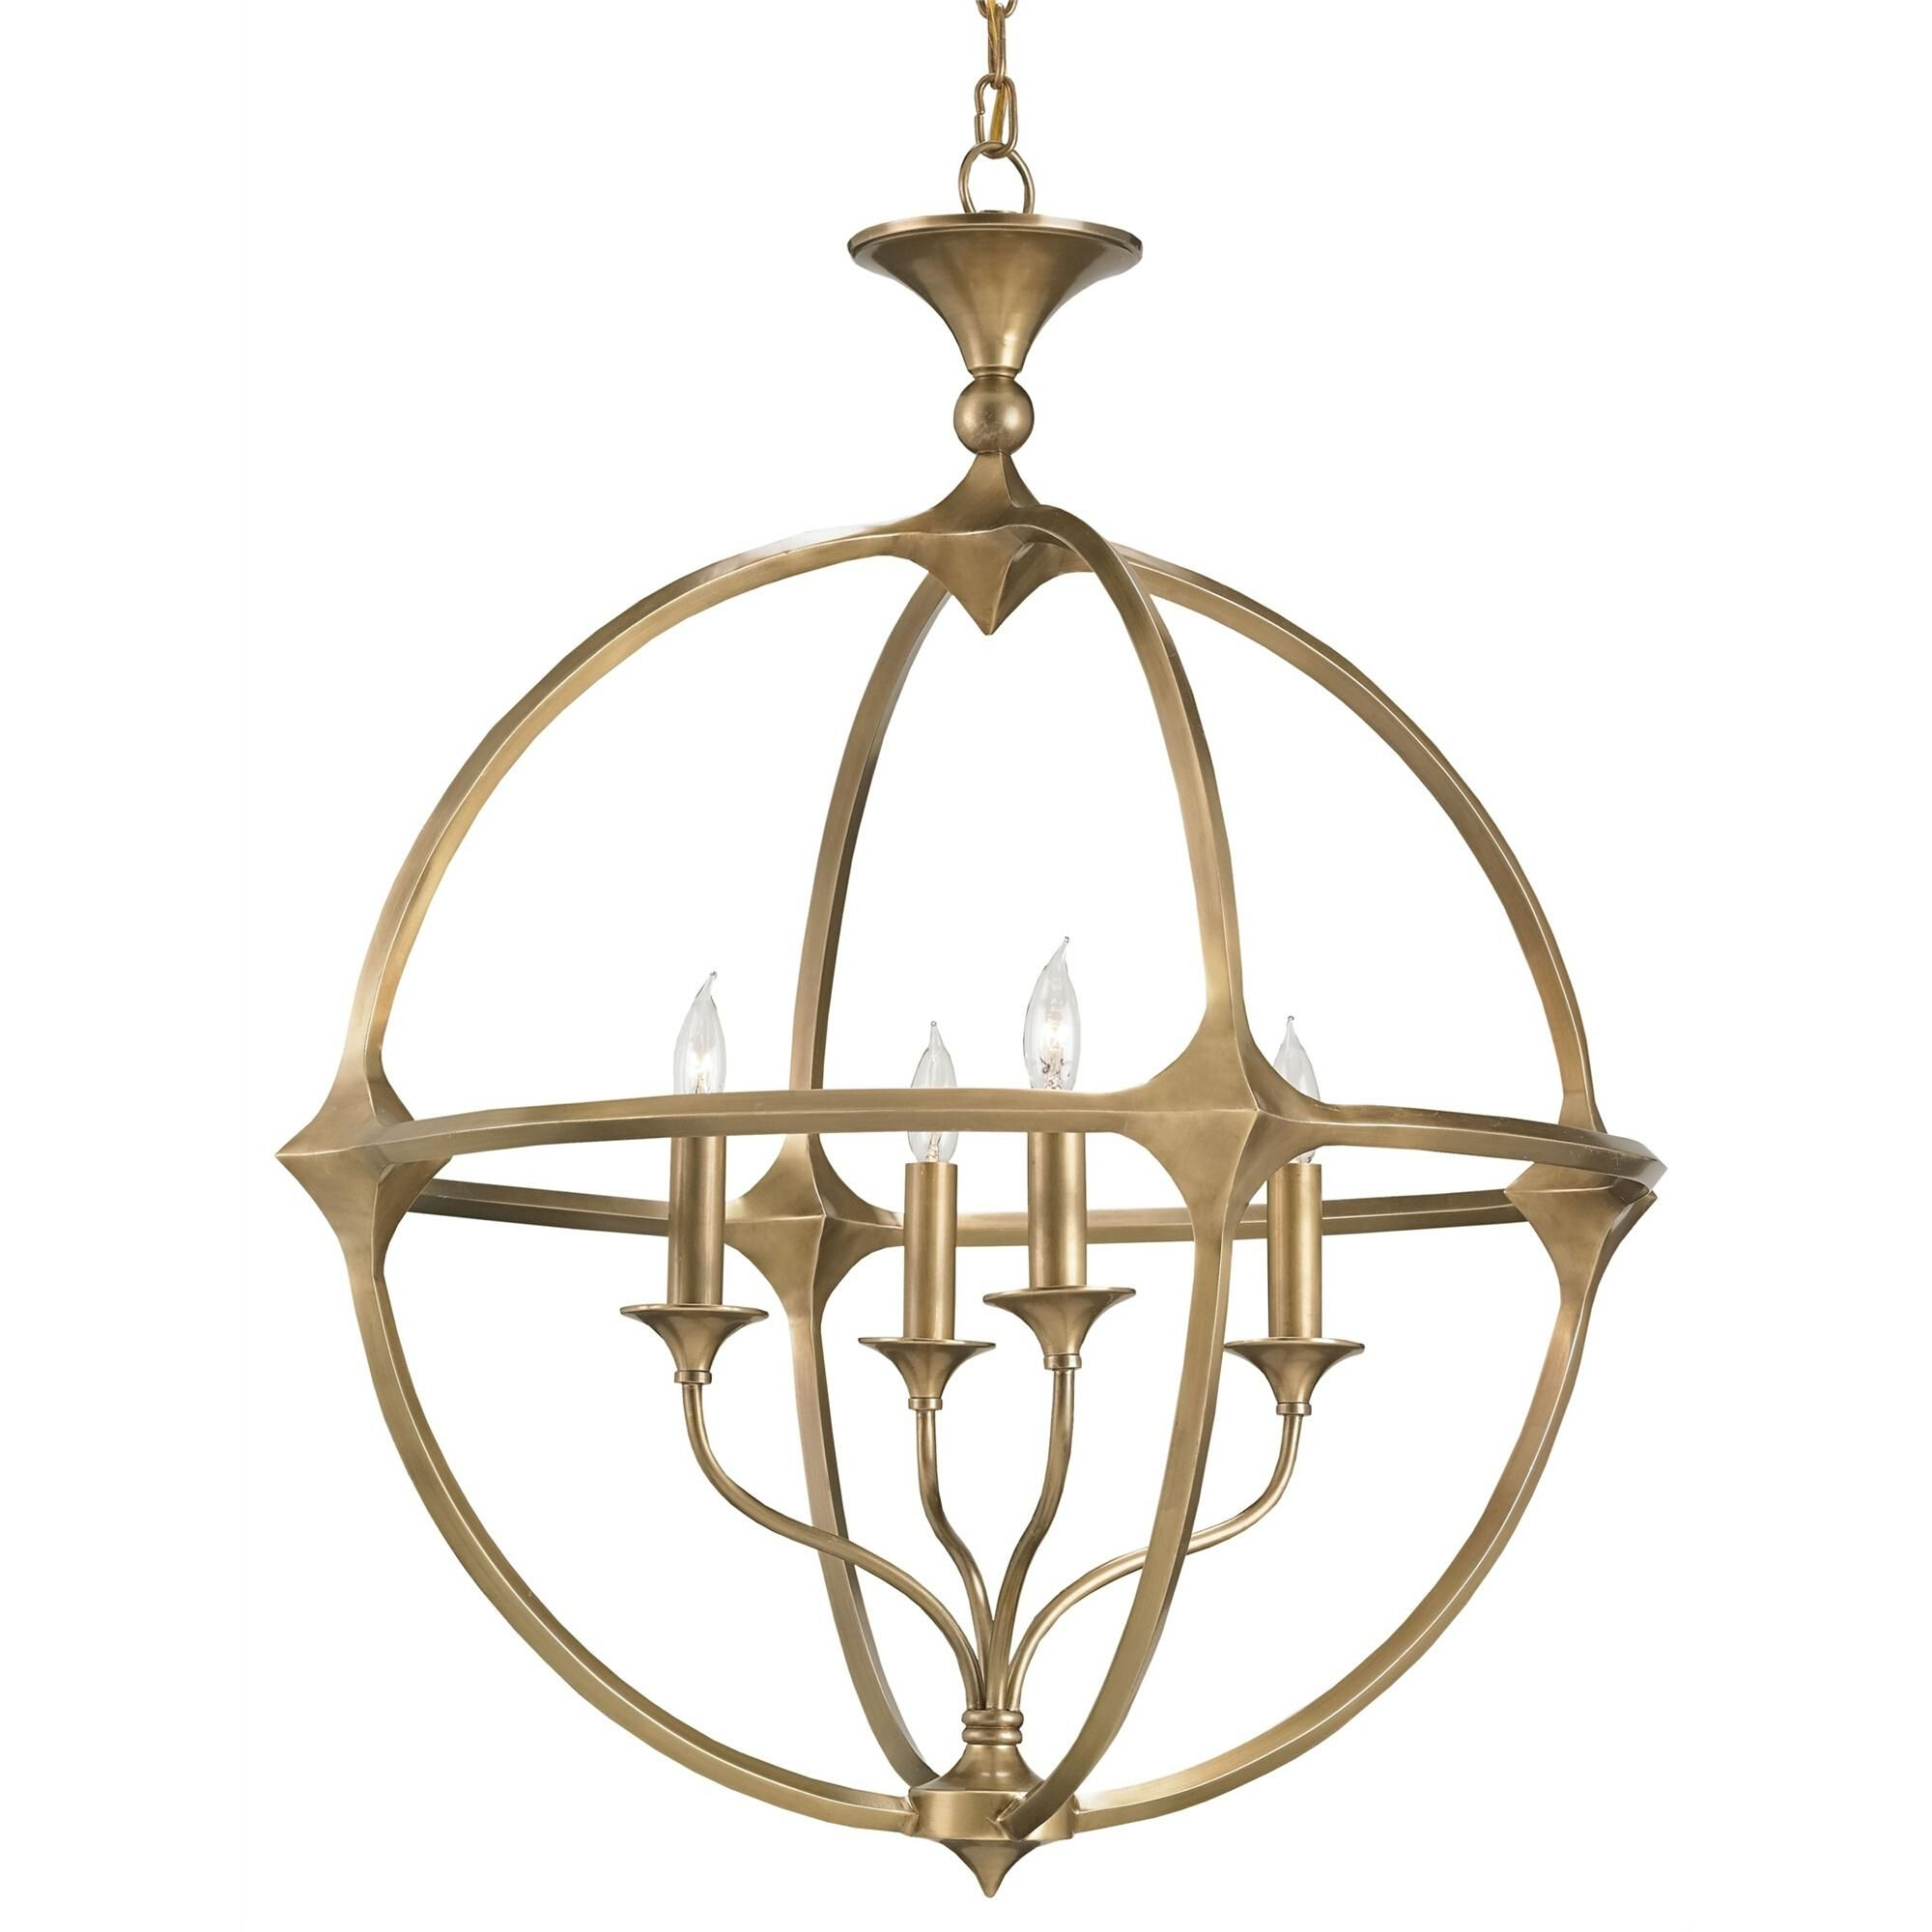 Currey And Company Bellario Orb Chandelier Currey 9346 Candelabra Inc Orb Chandelier Chandelier Design Candle Style Chandelier